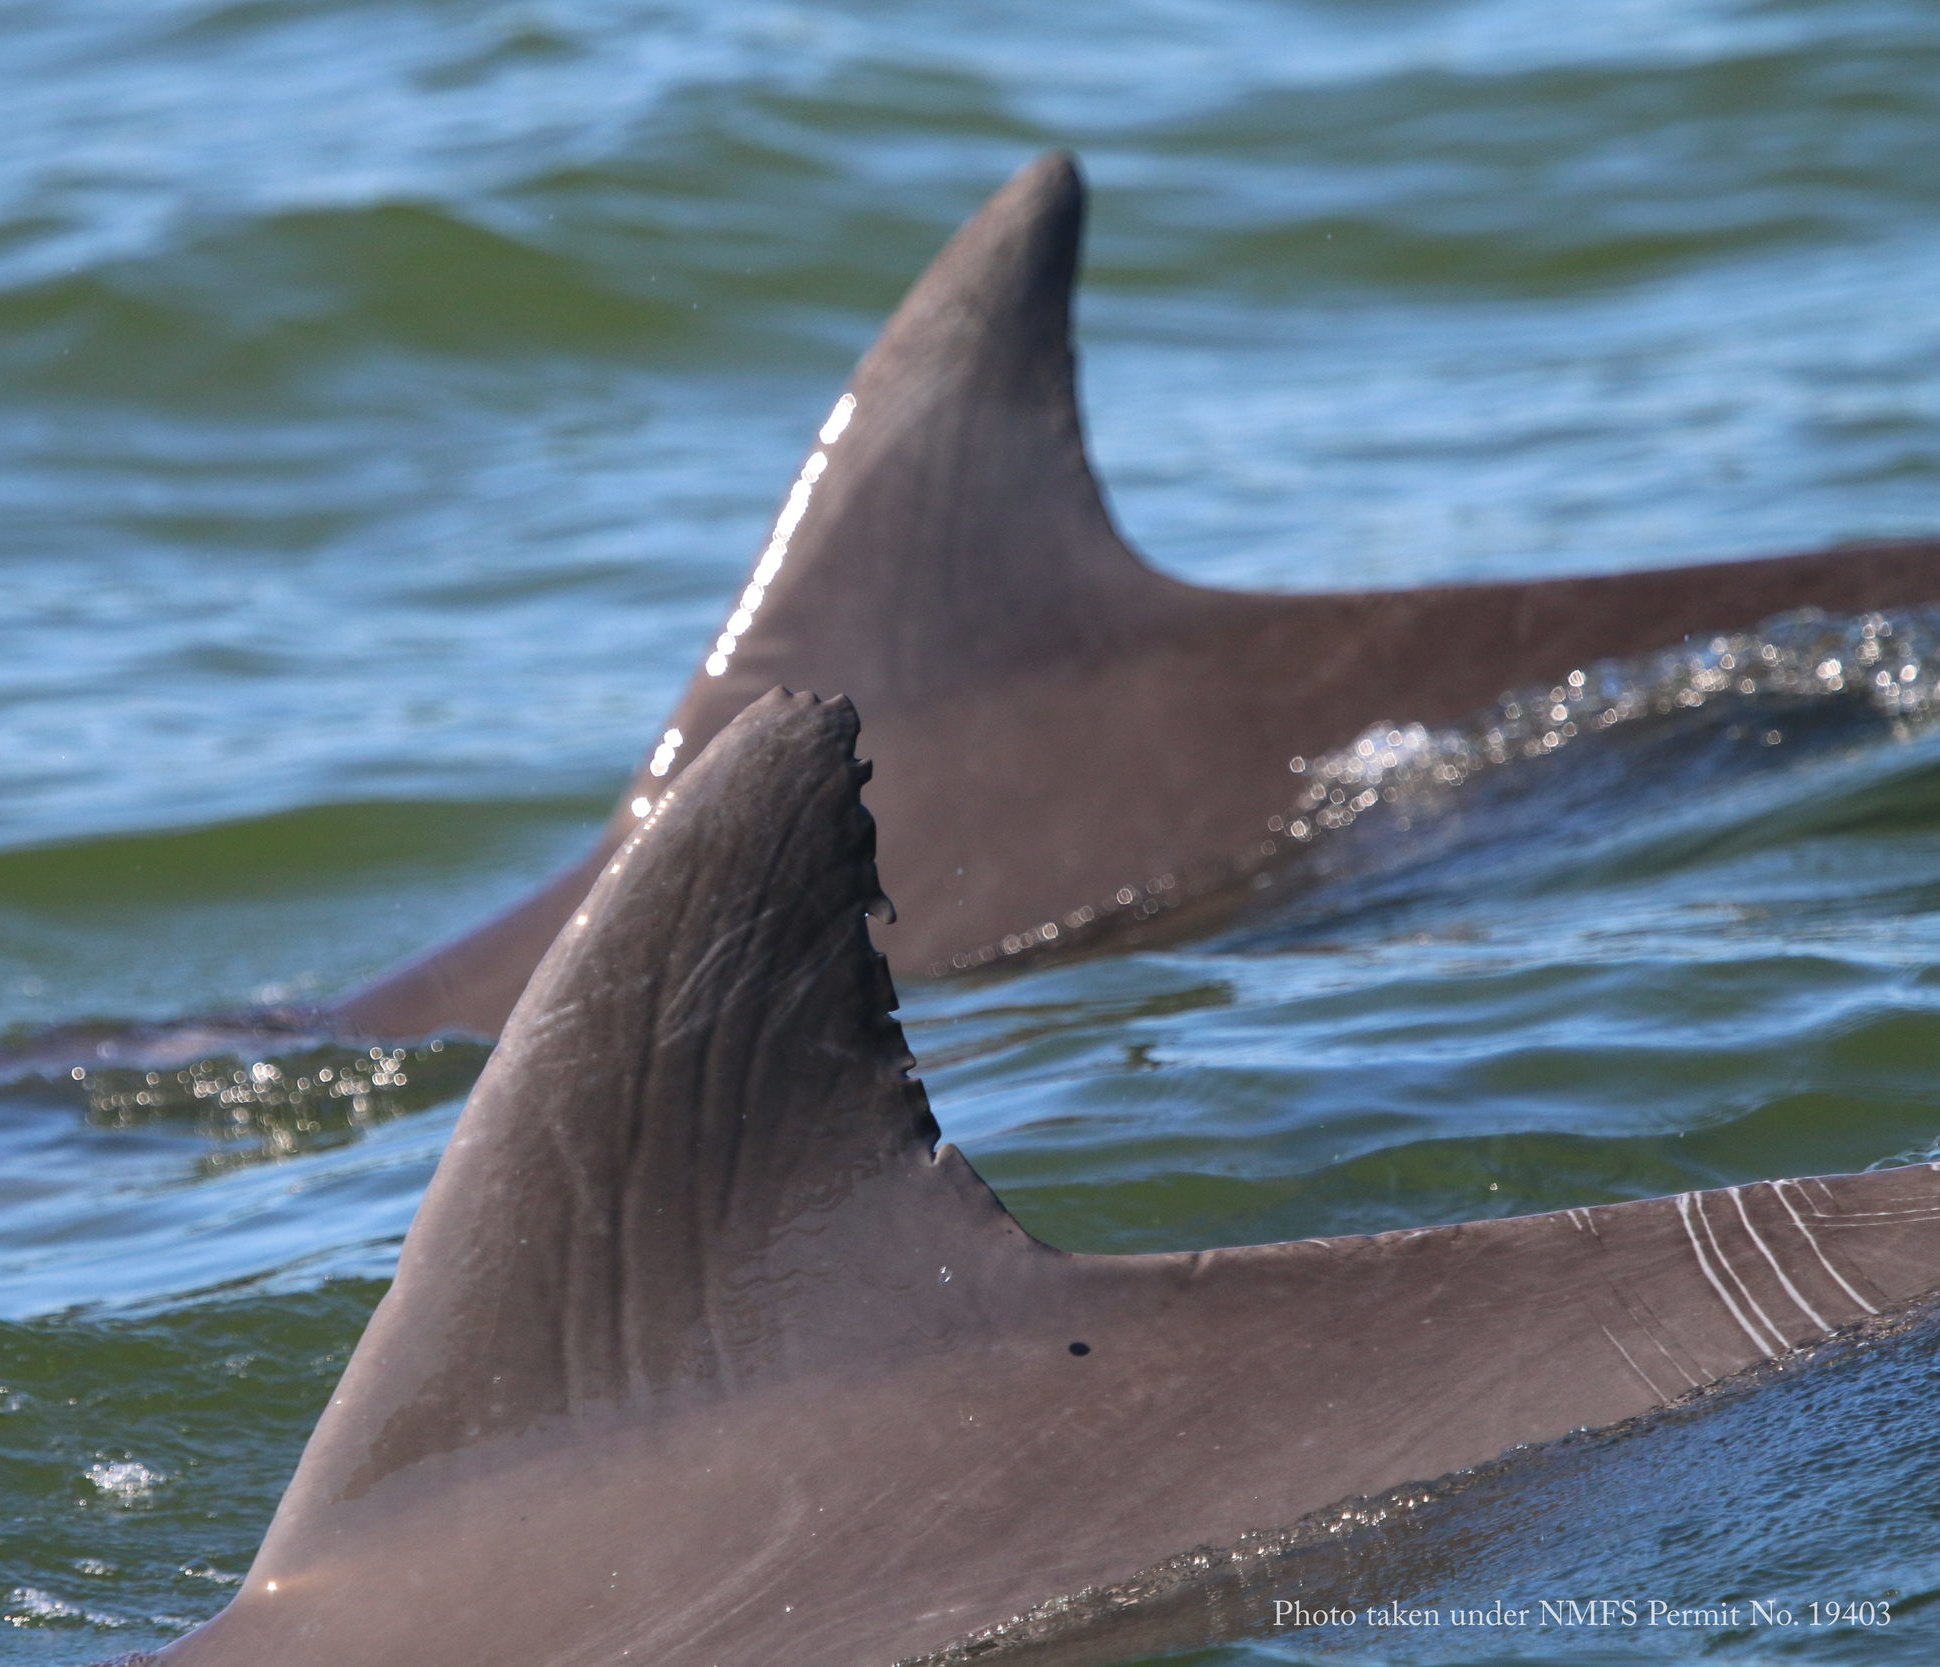 Figure 3. Two bottlenose dolphins in the Potomac River, surfacing in almost perfect synchrony.